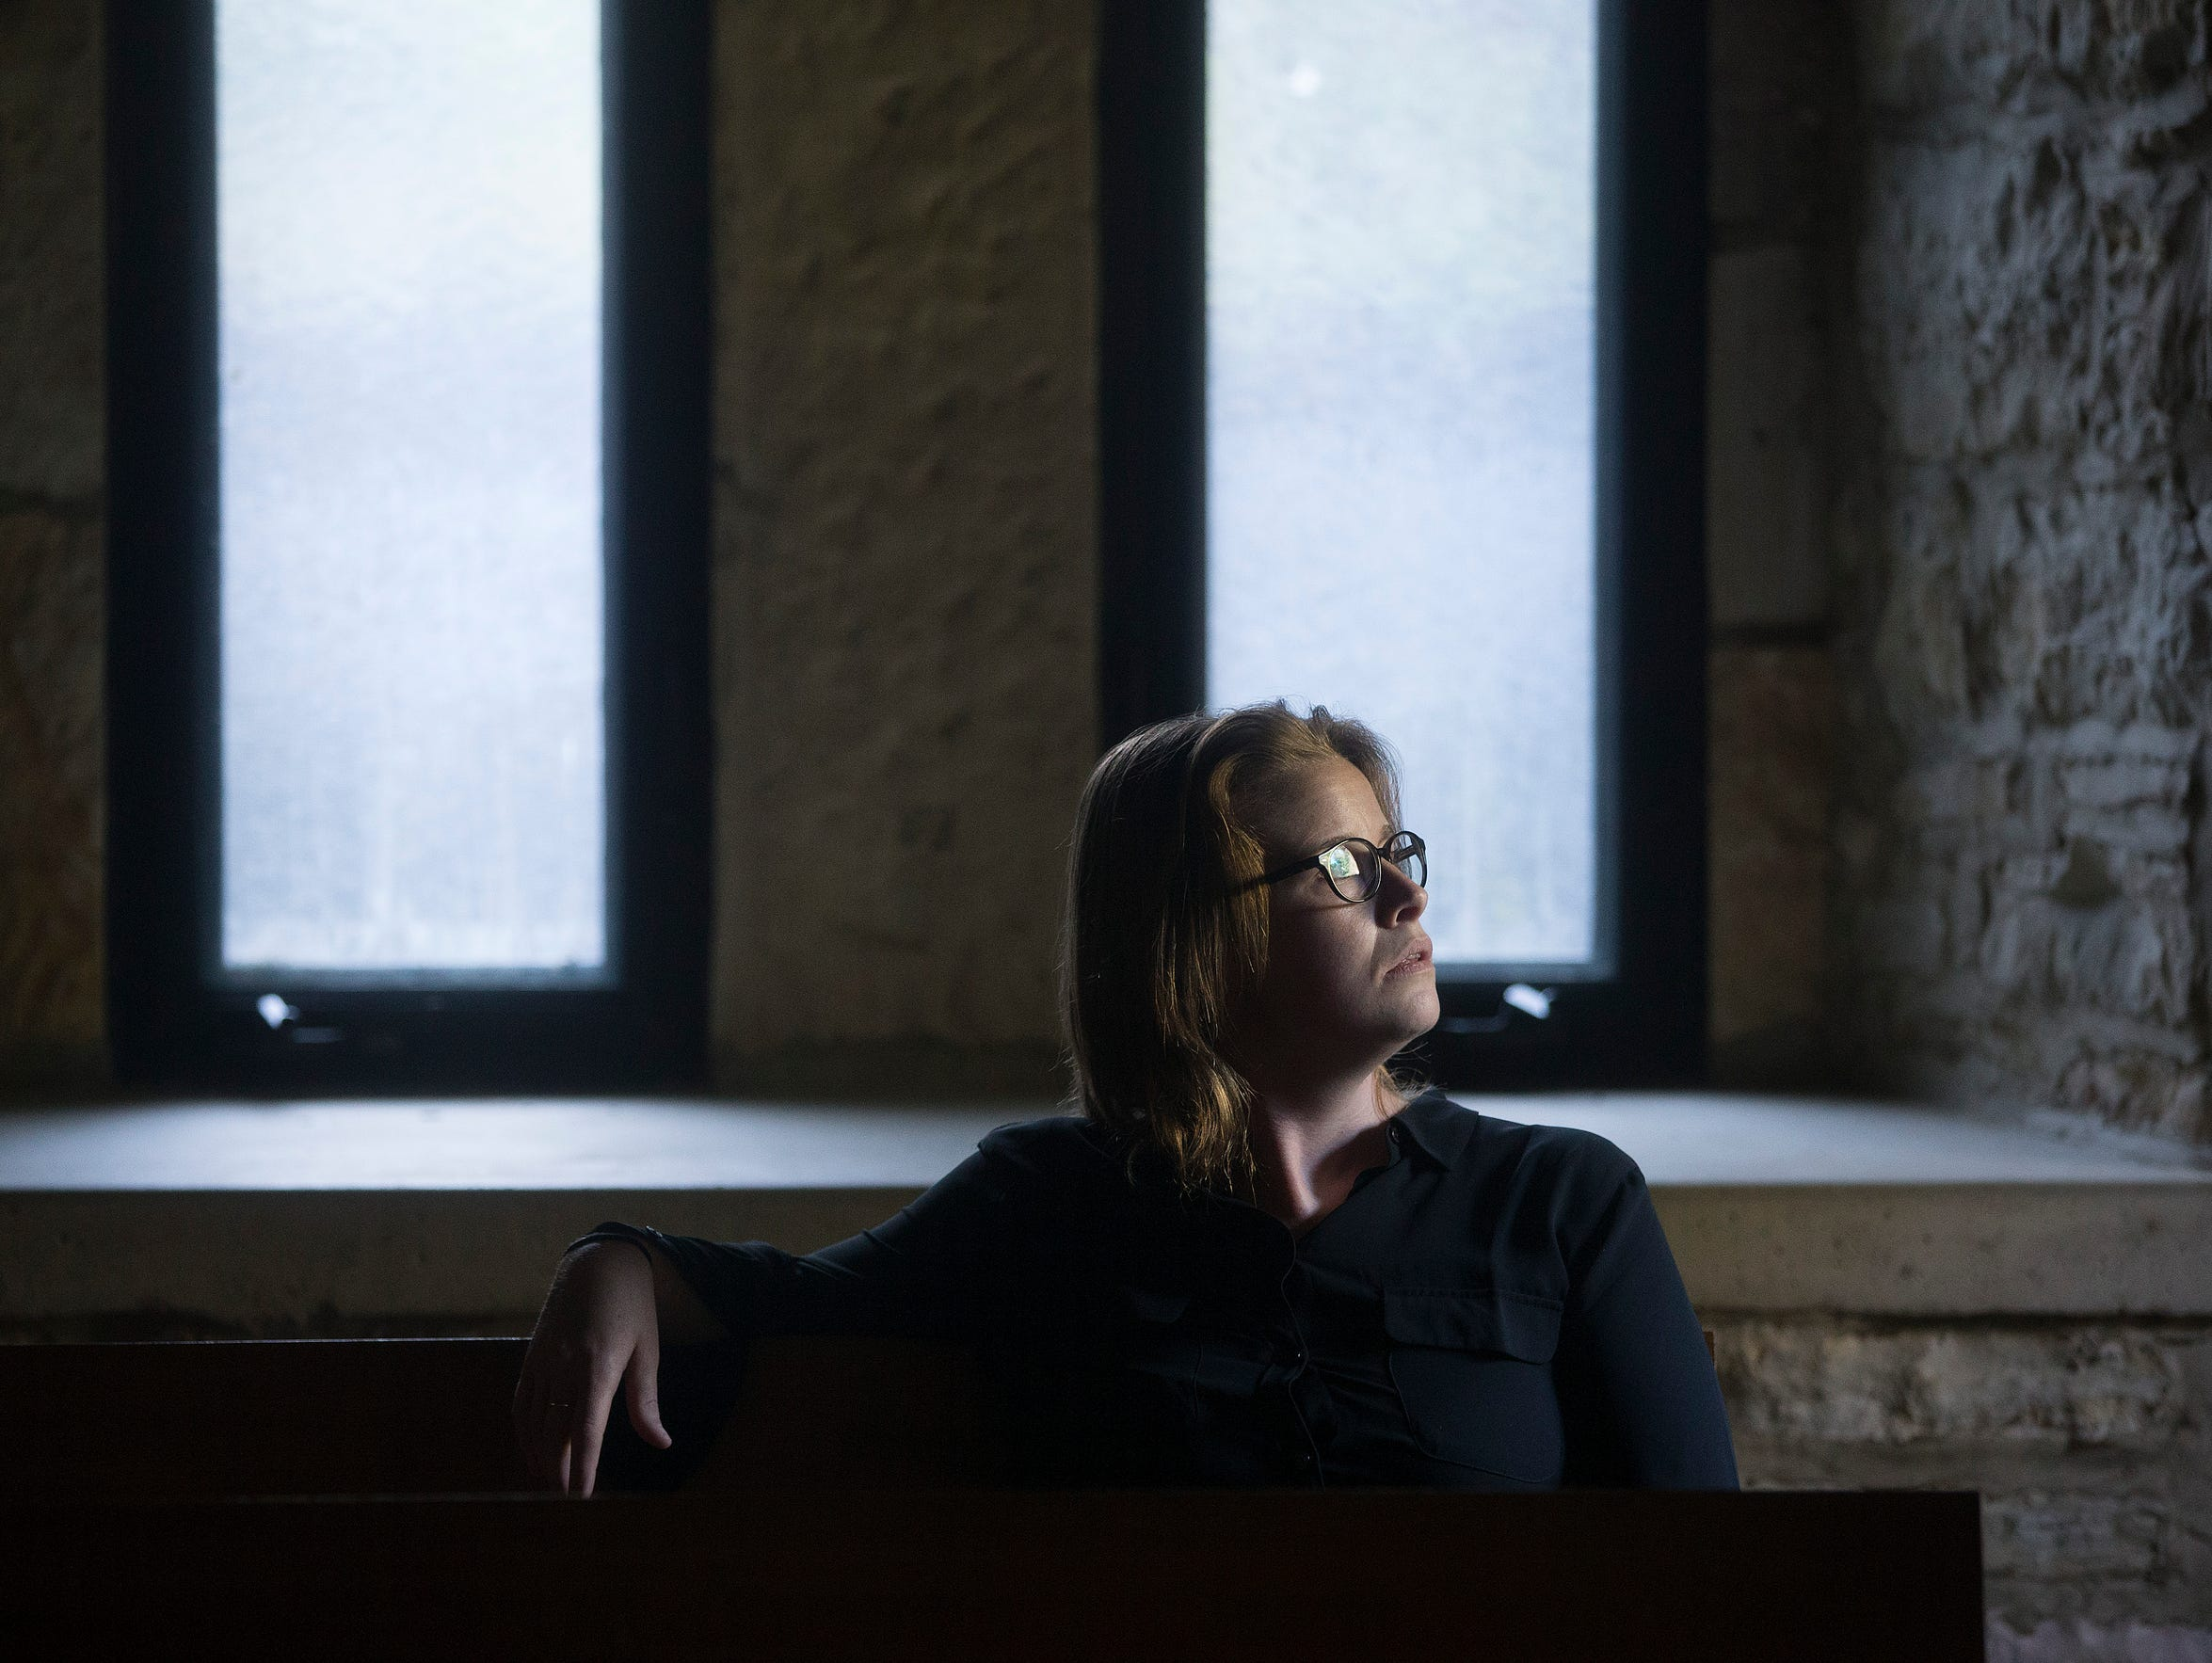 Ames native Cassidy Hall seeks silence in the guest